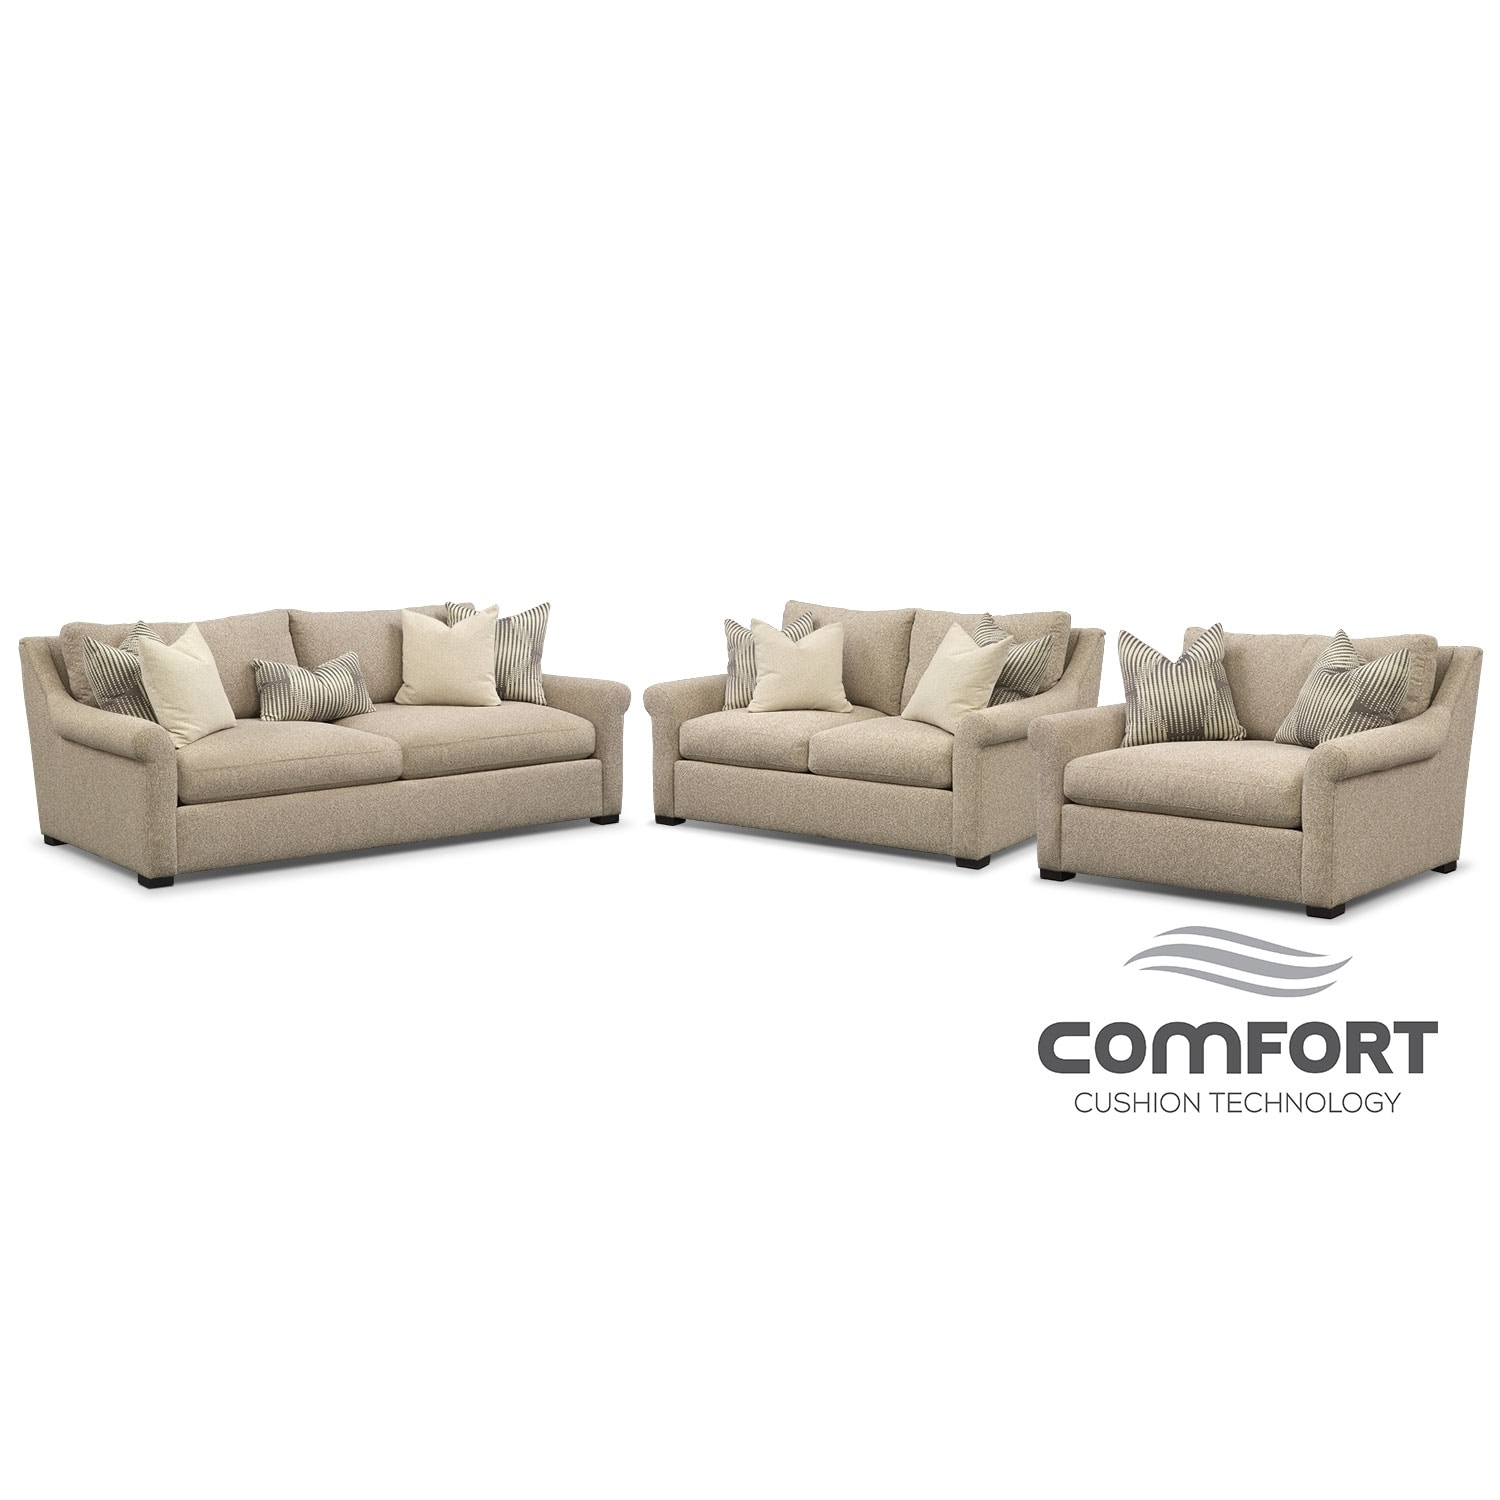 loveseat and chair a half leather wingback chairs for sale robertson comfort sofa set